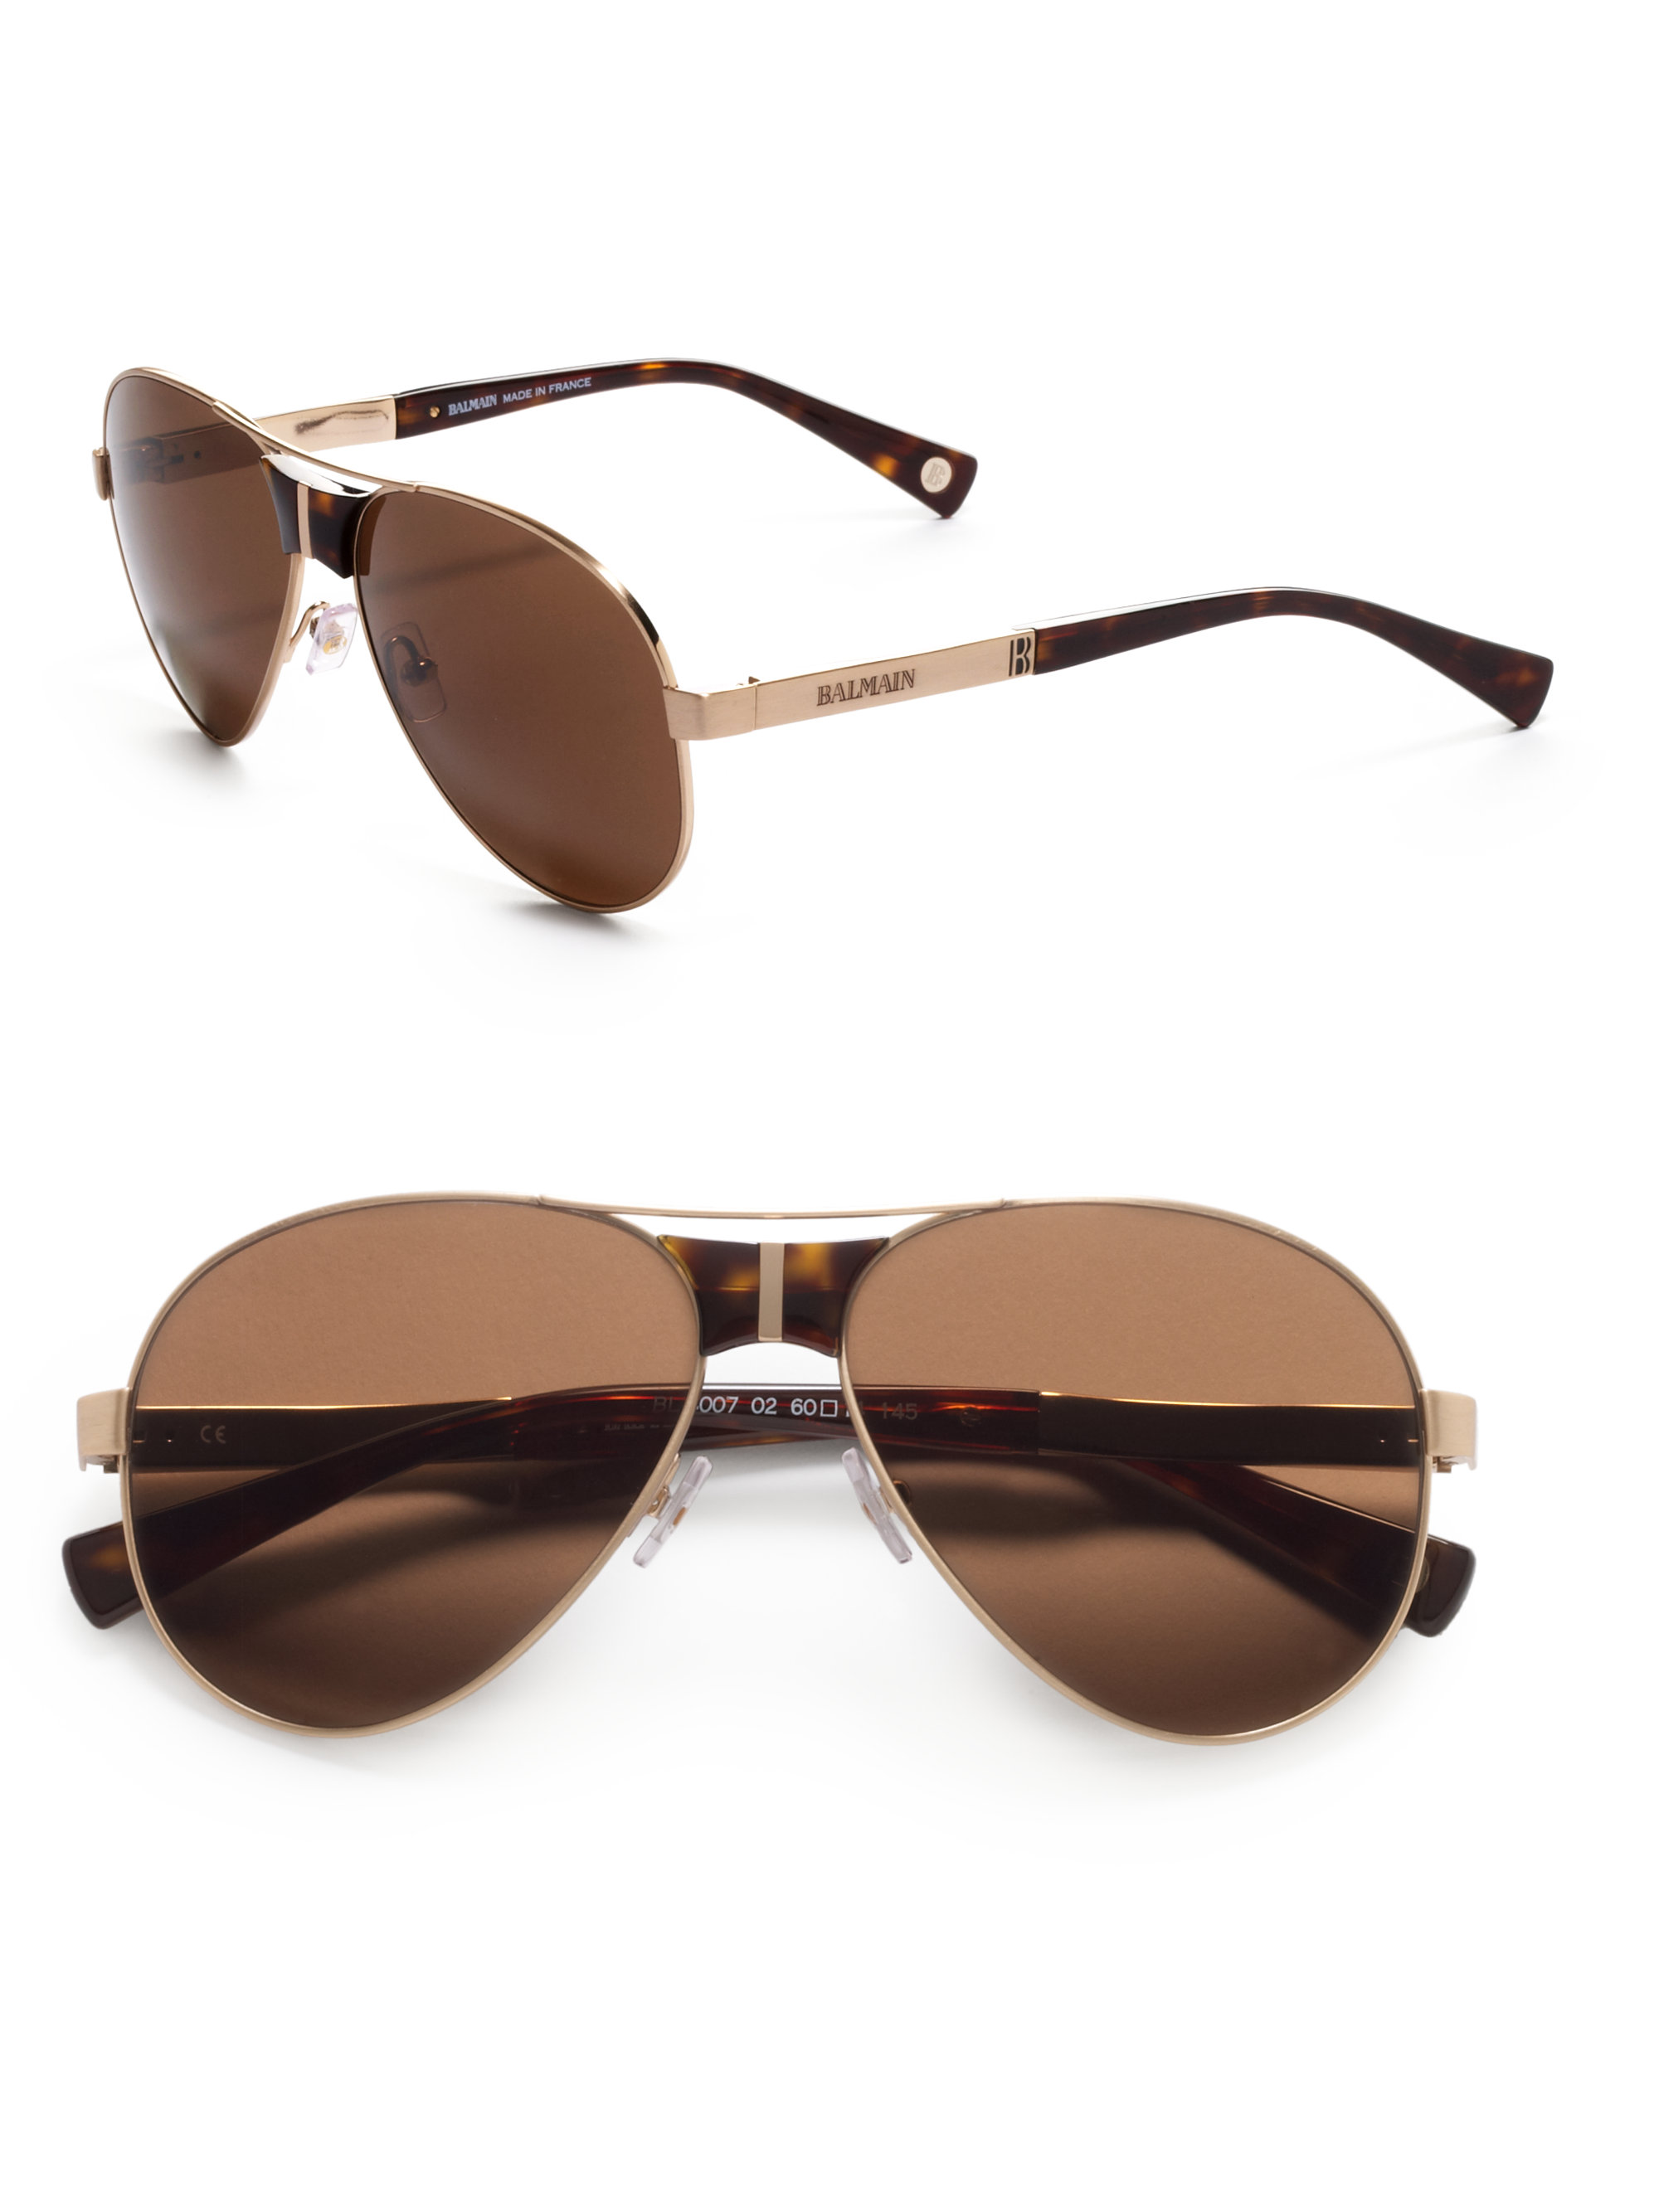 Balmain Aviator Sunglasses  balmain aviator anium acetate sunglasses gold brown in brown